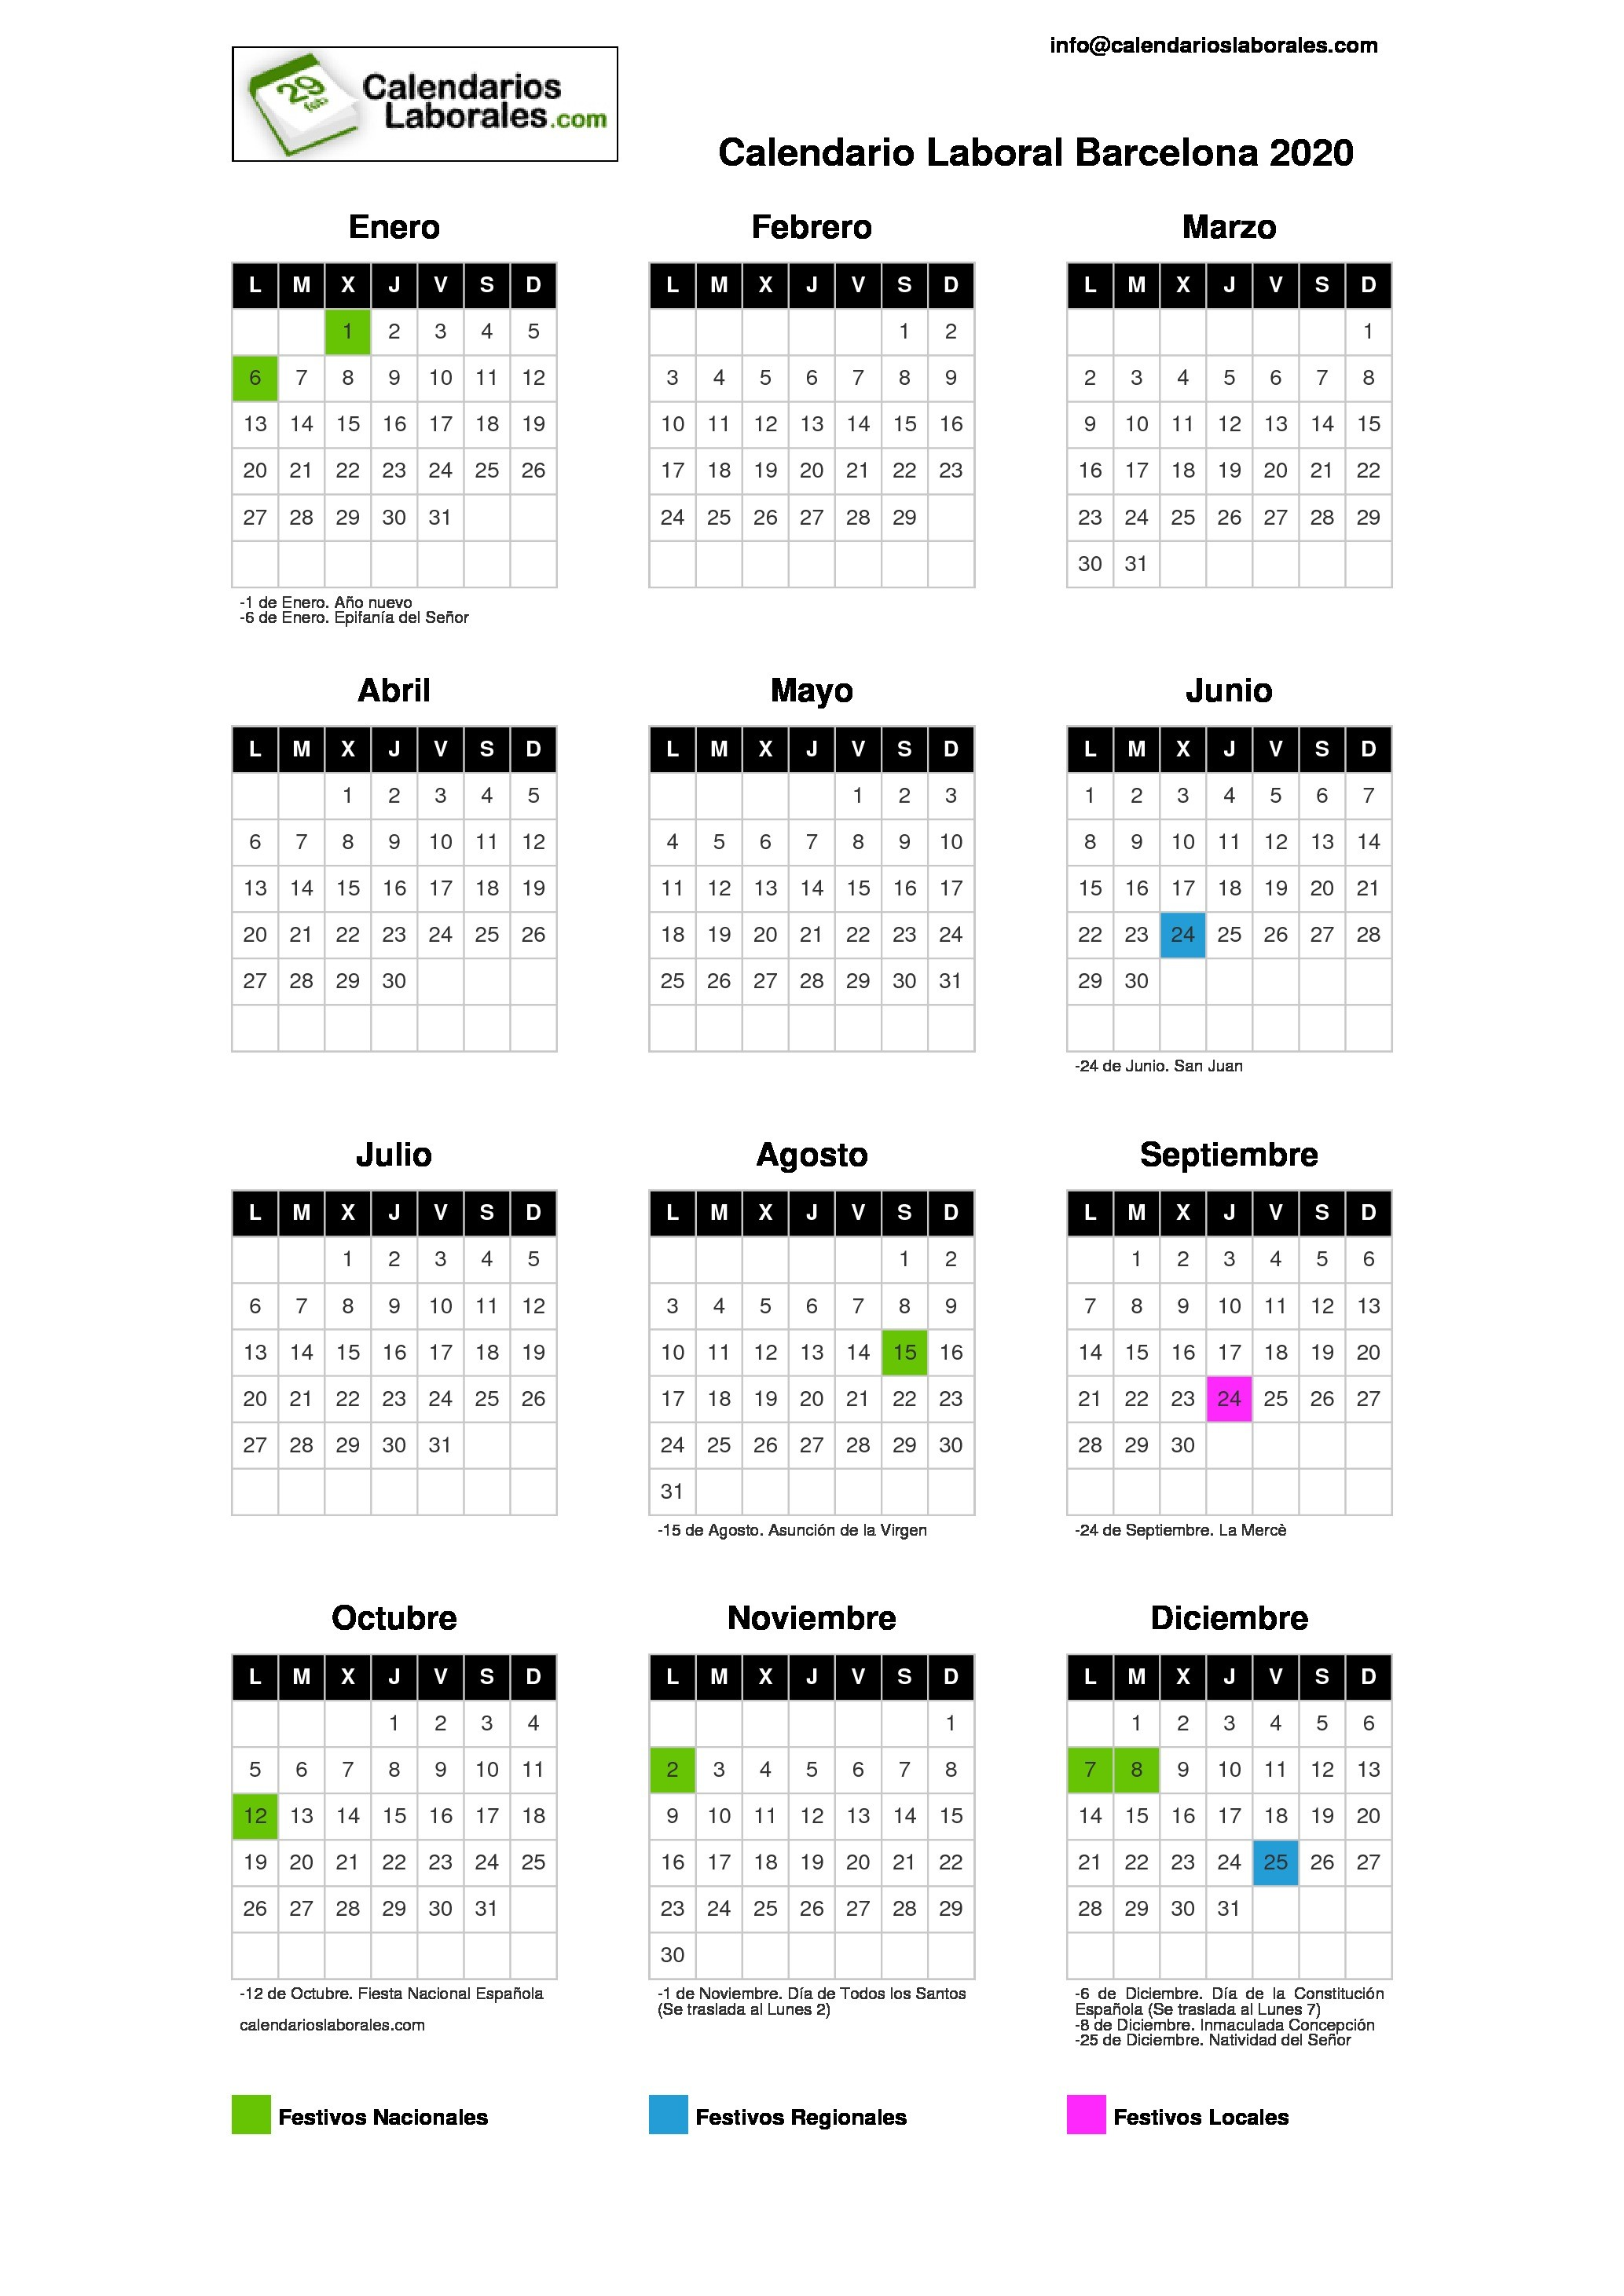 calendario laboral barcelona 2020